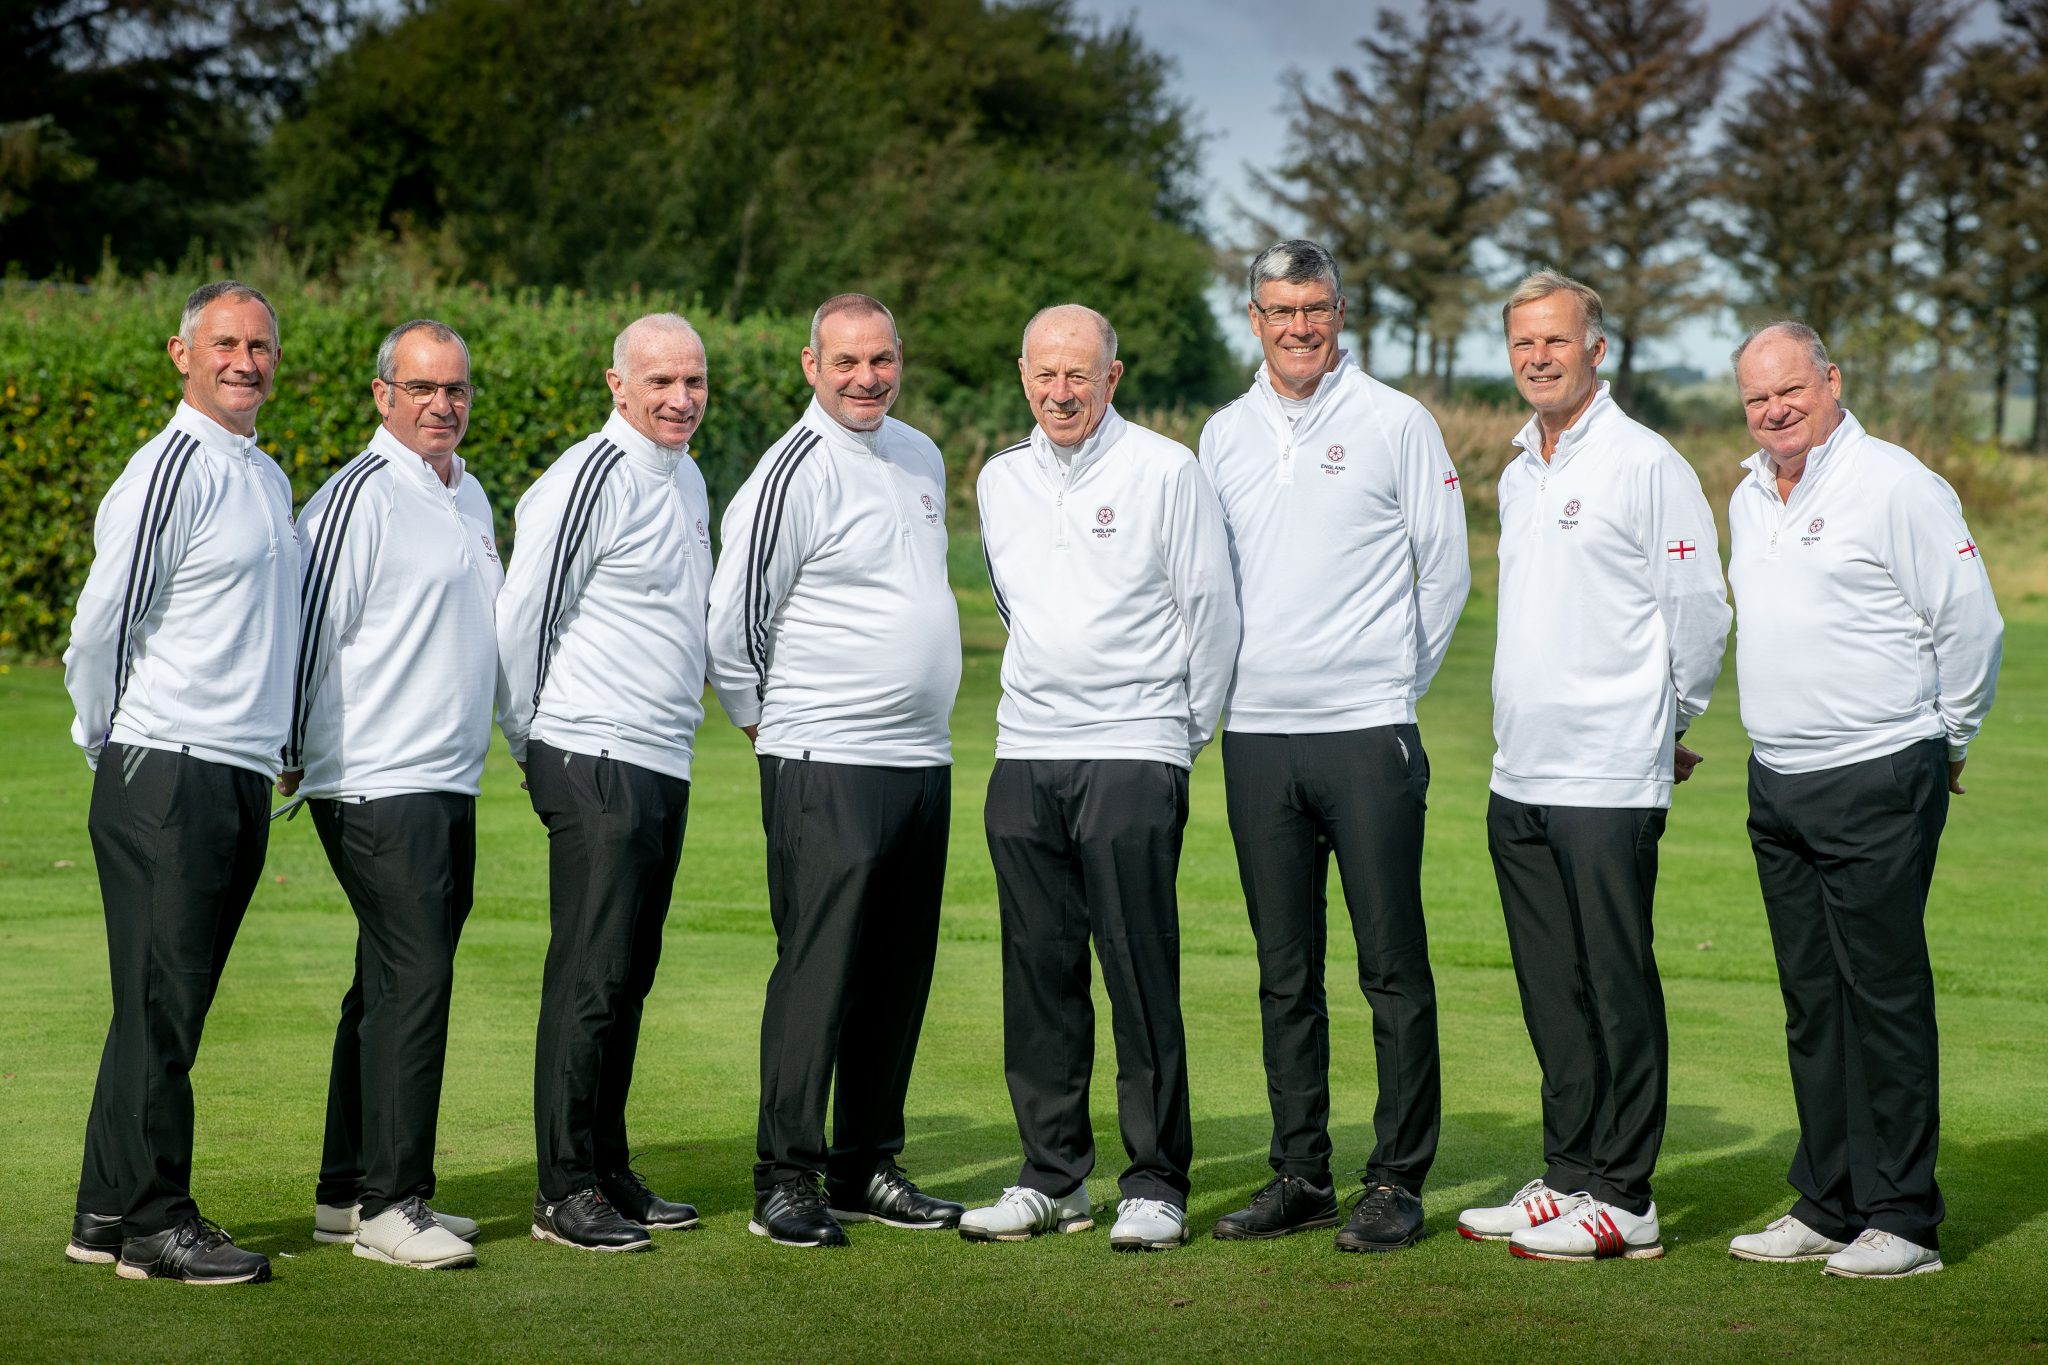 England's Senior Men follow European glory with Home International crown